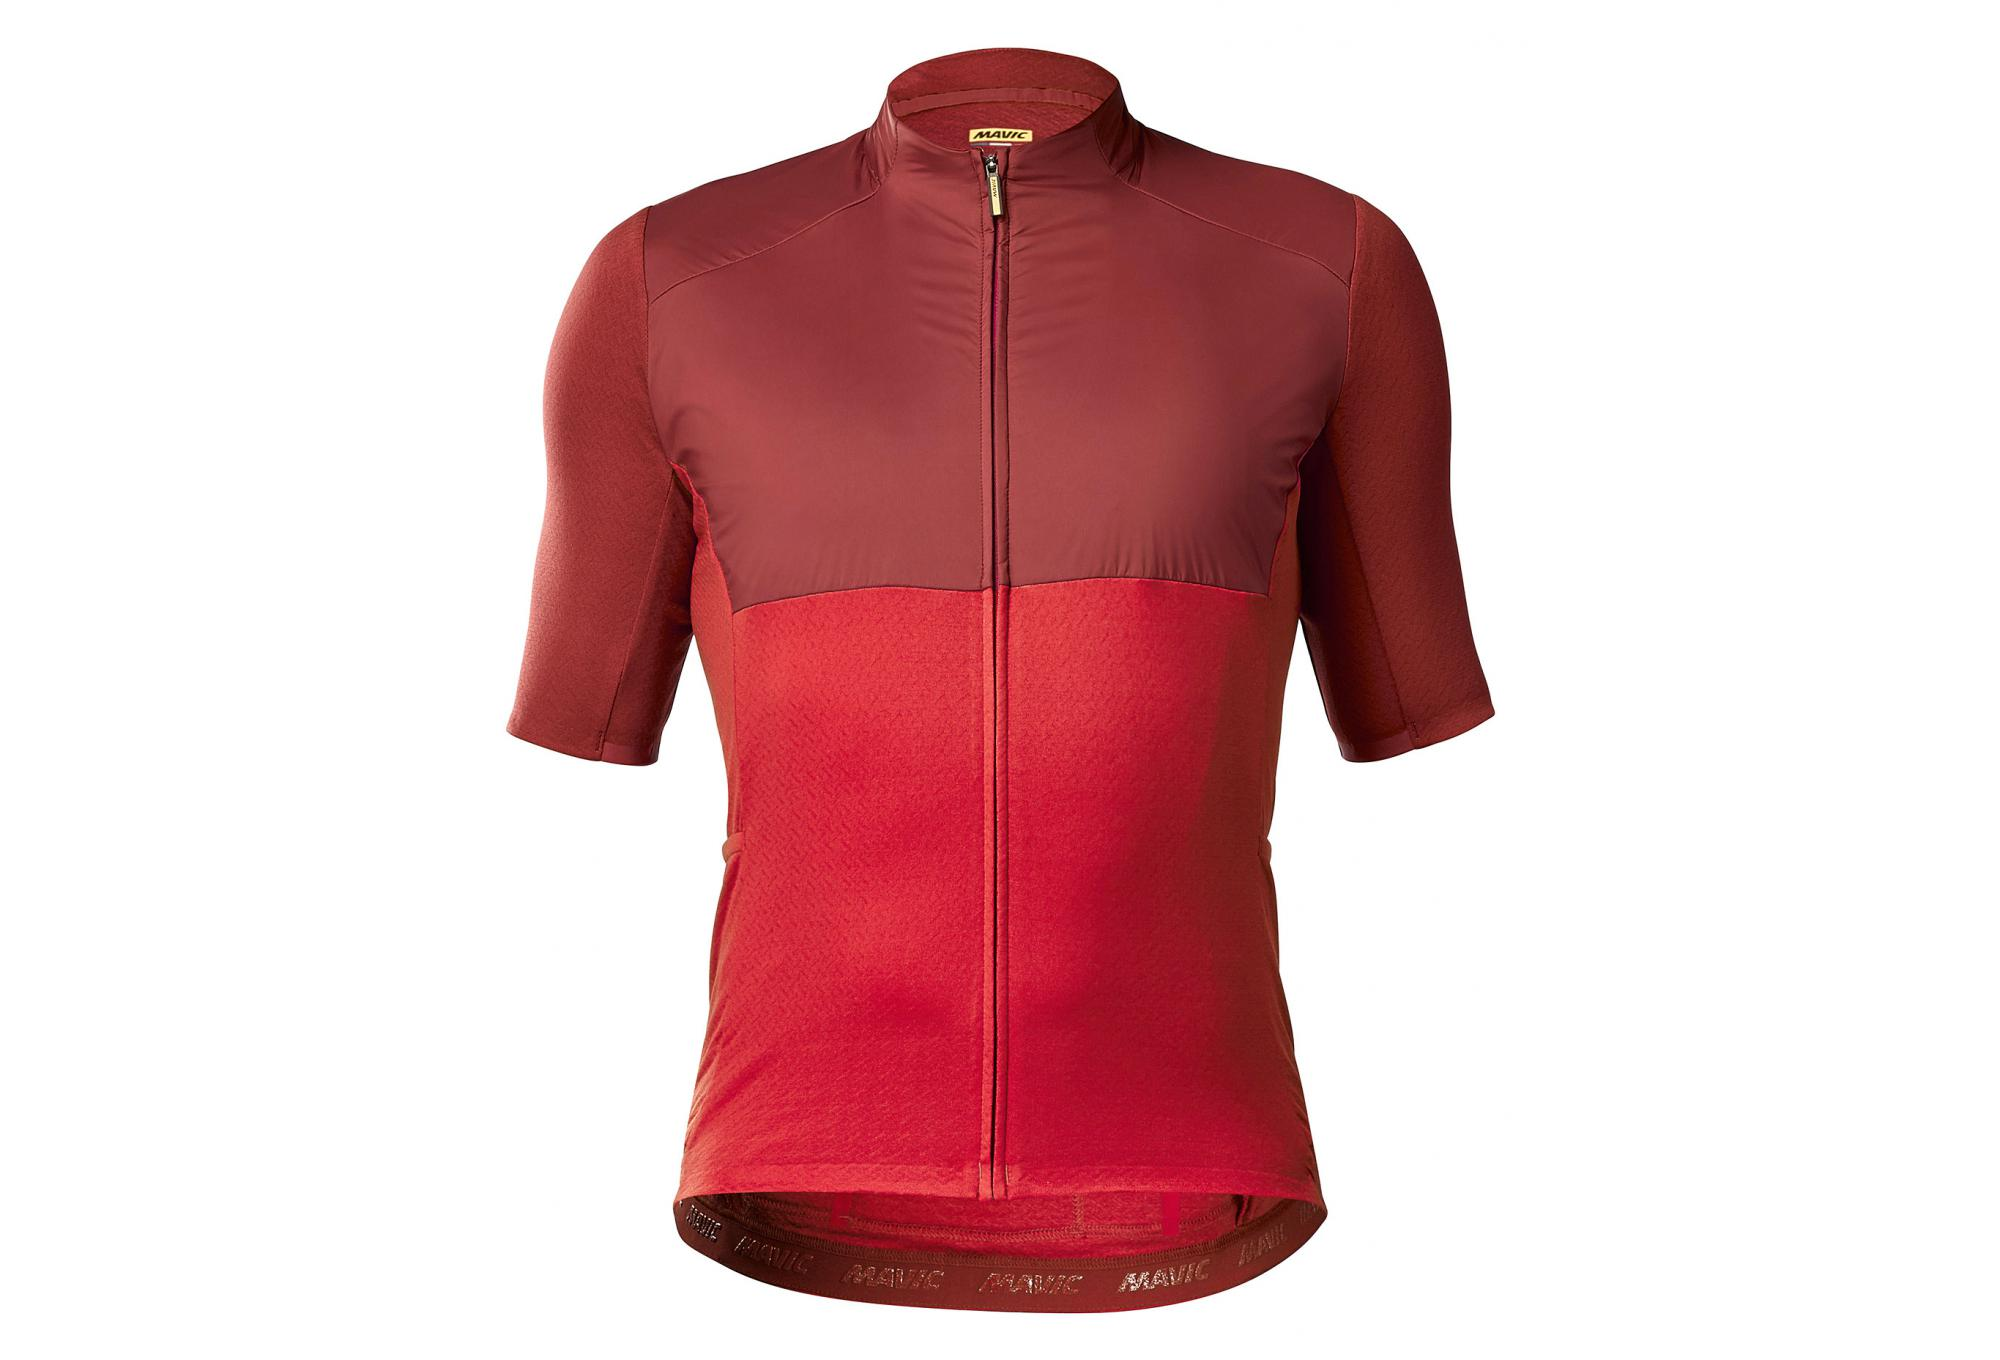 cdd122f03b2 MAVIC Allroad Wind Short Sleeves Jersey Red | Alltricks.com